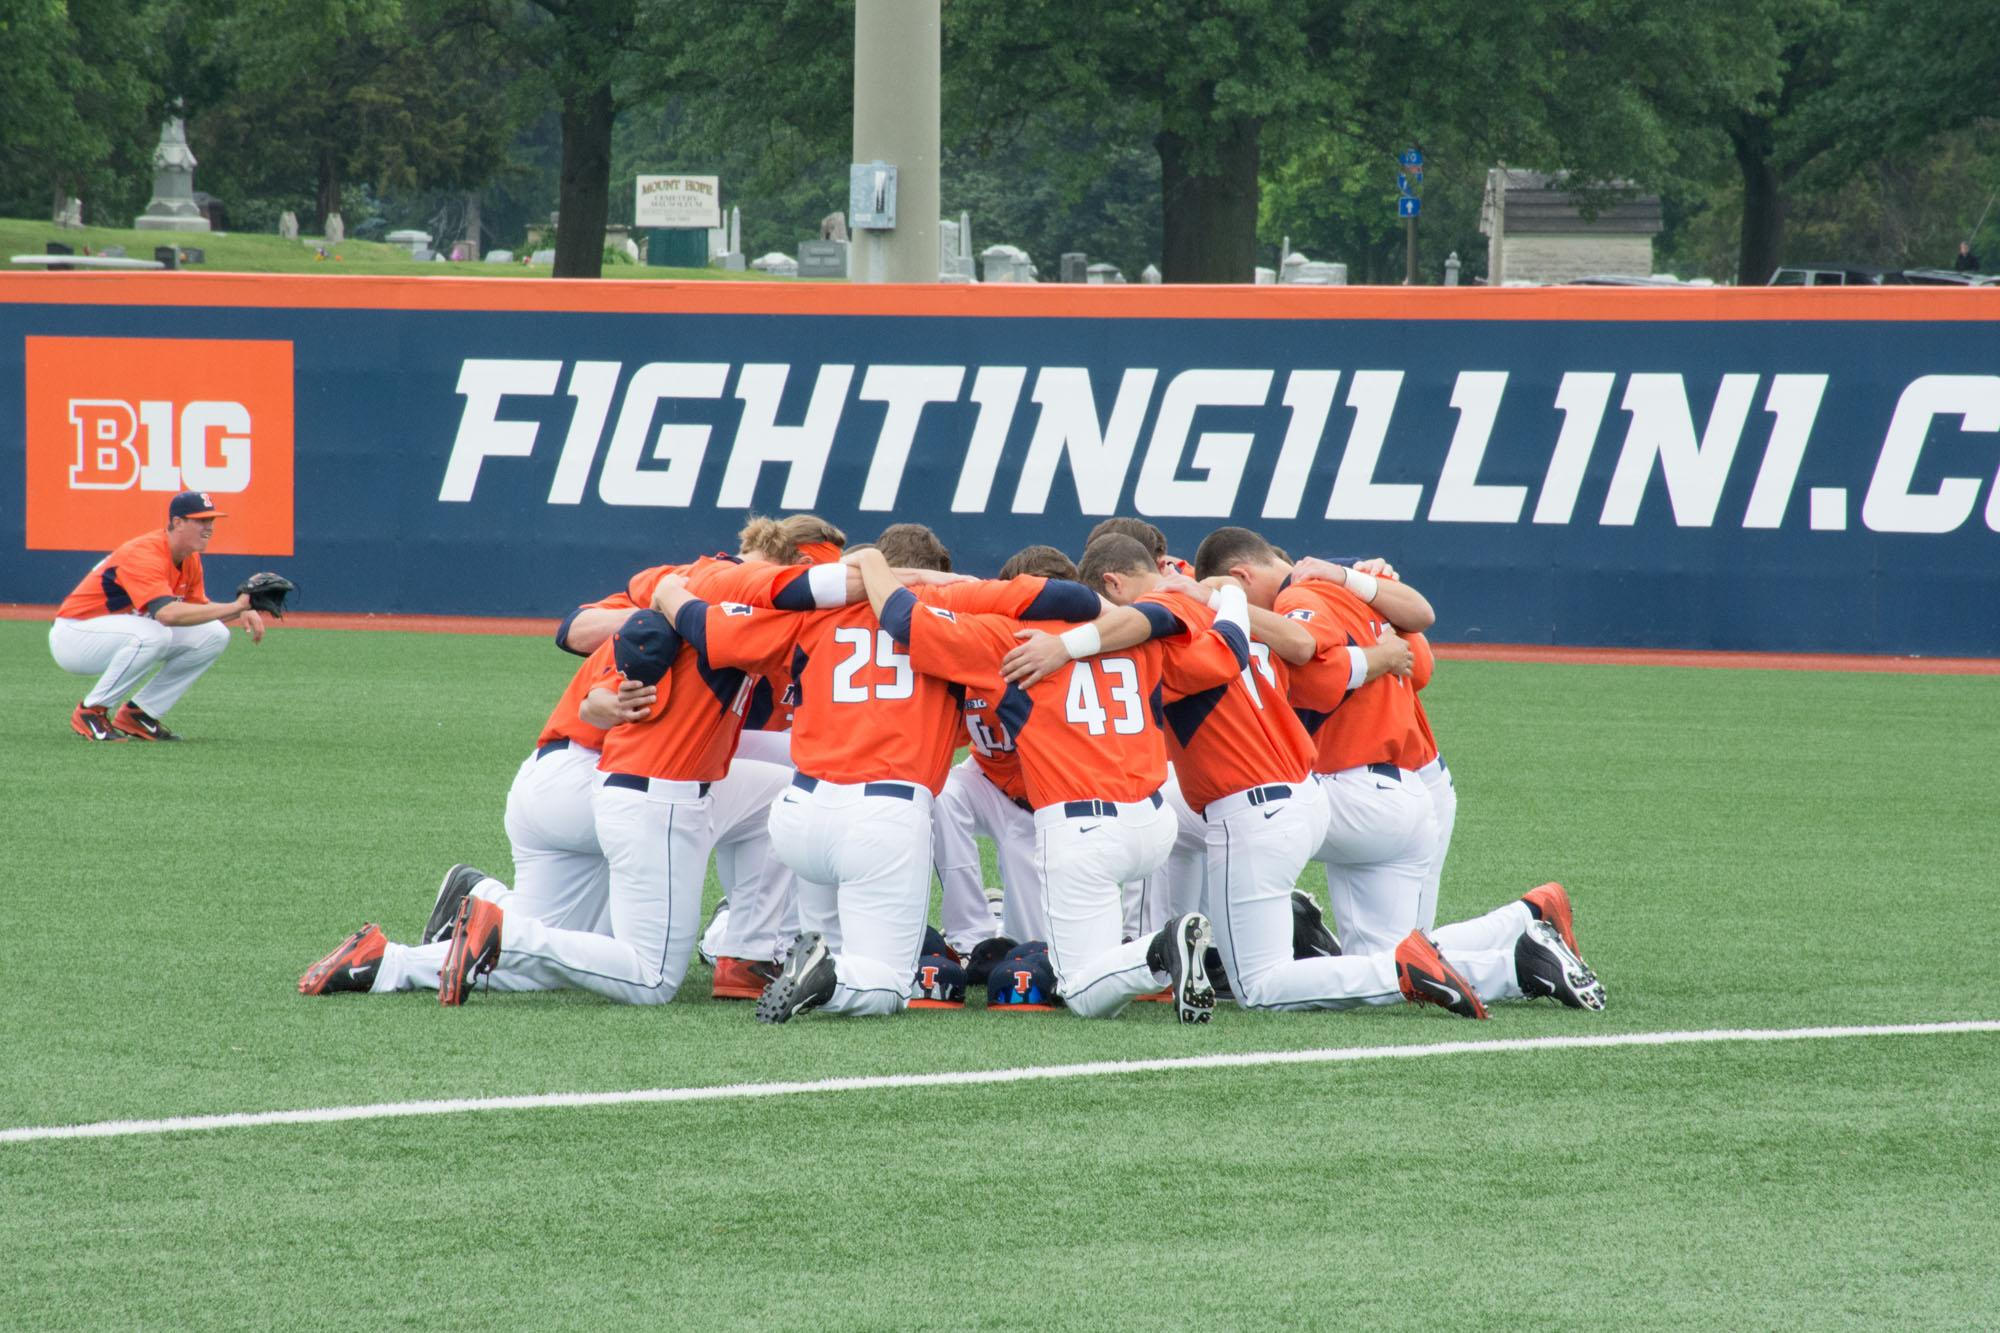 Illini+columnist+Kevin+McCarthy+sat+down+to+talk+with+Illini+baseball%E2%80%99s+++Charlie+Naso+to+talk+about+everything+from+last+year%E2%80%99s+win+streak+to+++his+chances+at+touching+Naso%E2%80%99s+heater.